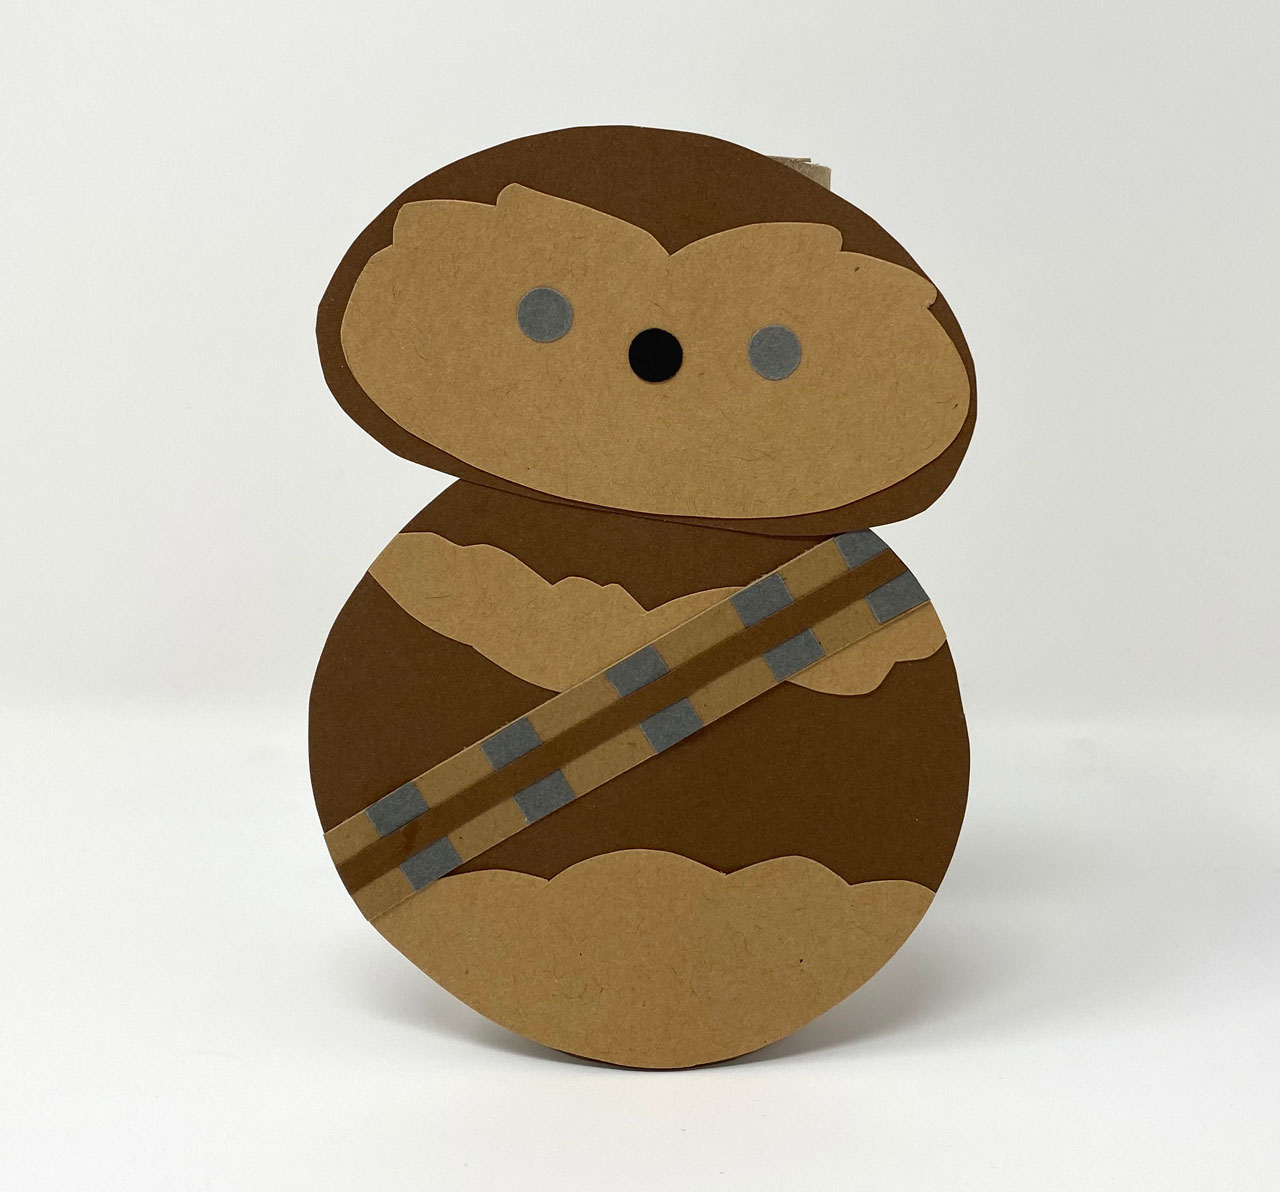 Star Wars Roll Out Chewie craft